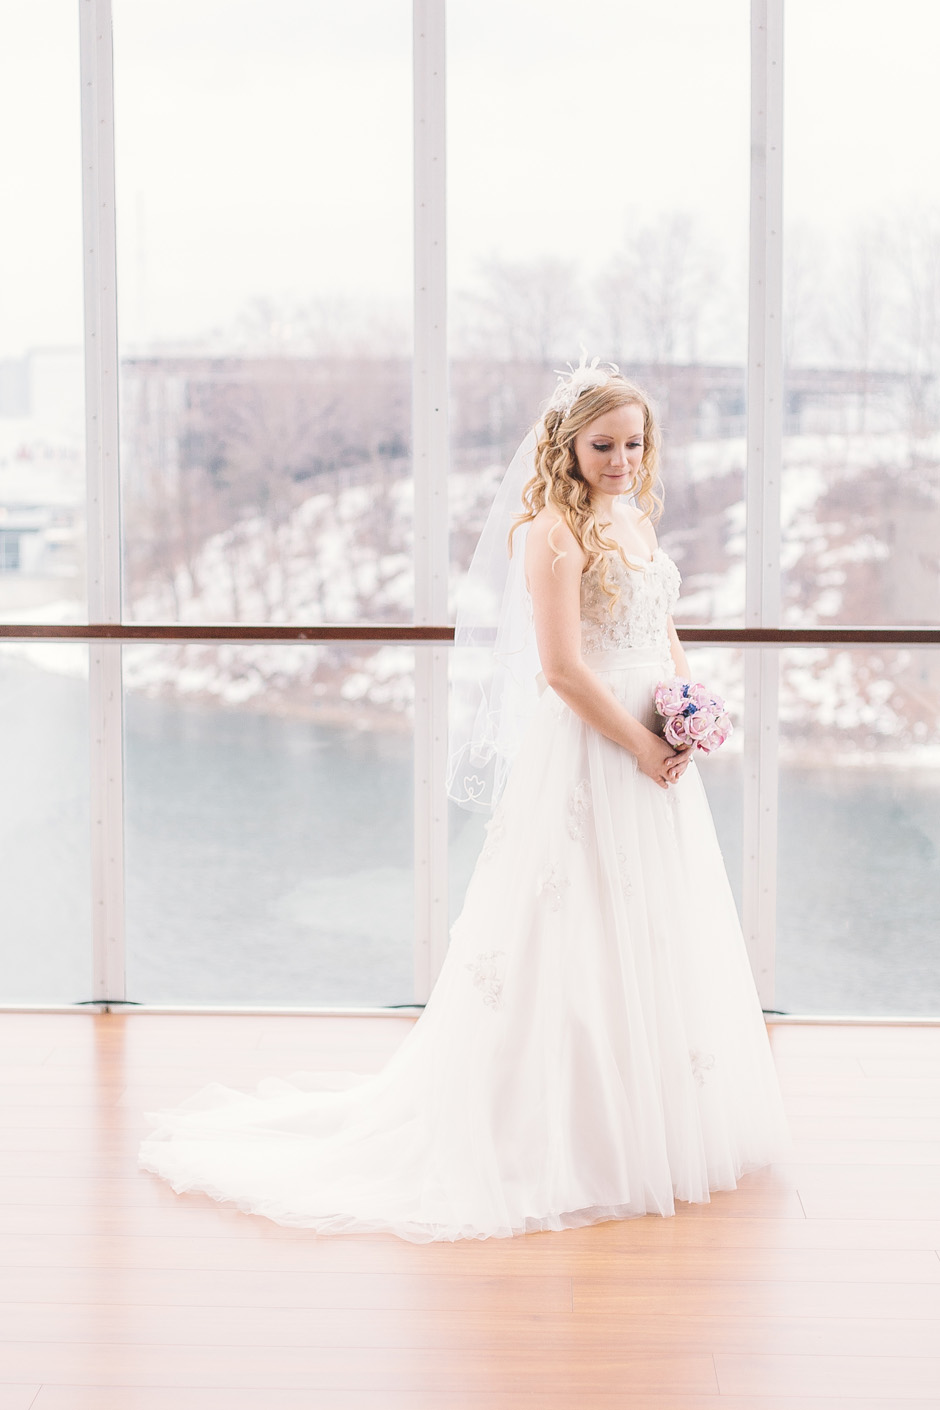 Toronto Wedding Portrait Photography - Bride posing in natural light